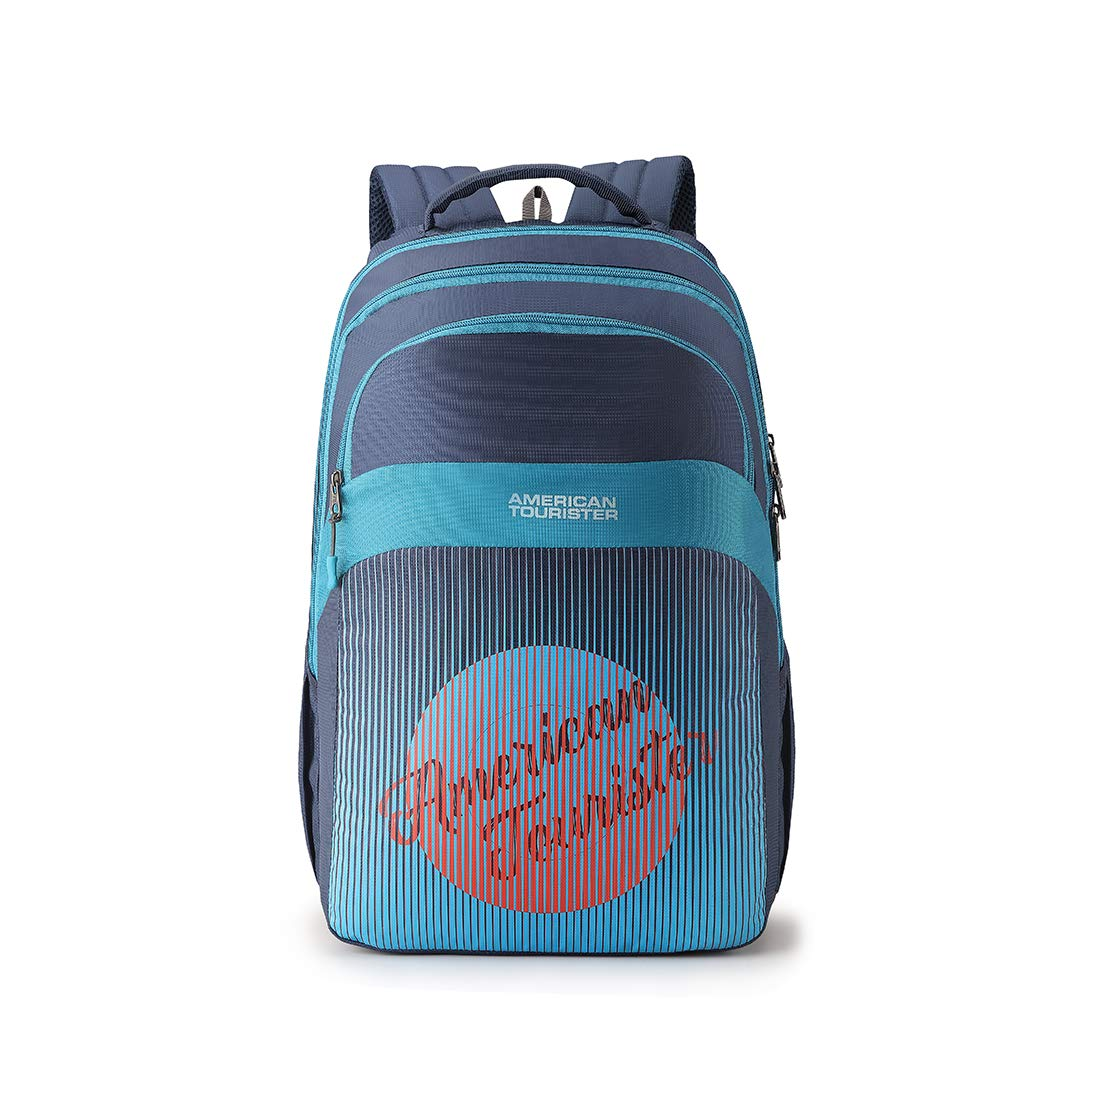 American Tourister Crone 28 Ltrs Backpack